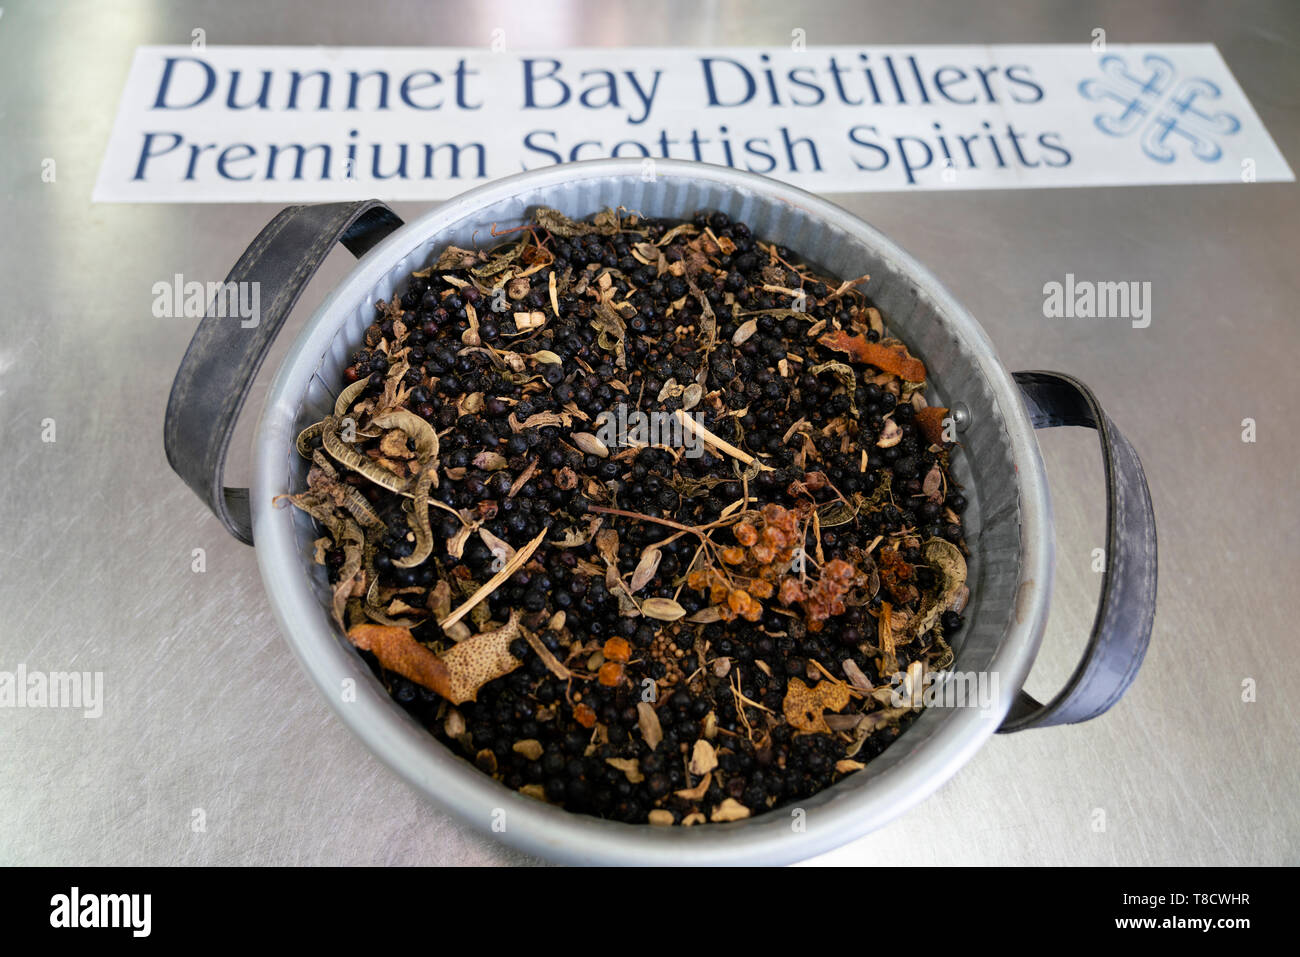 Basket of dried botanicals at  Dunnet Bay Distillery in Caithness on  the North Coast 500 scenic driving route in northern Scotland, UK - Stock Image